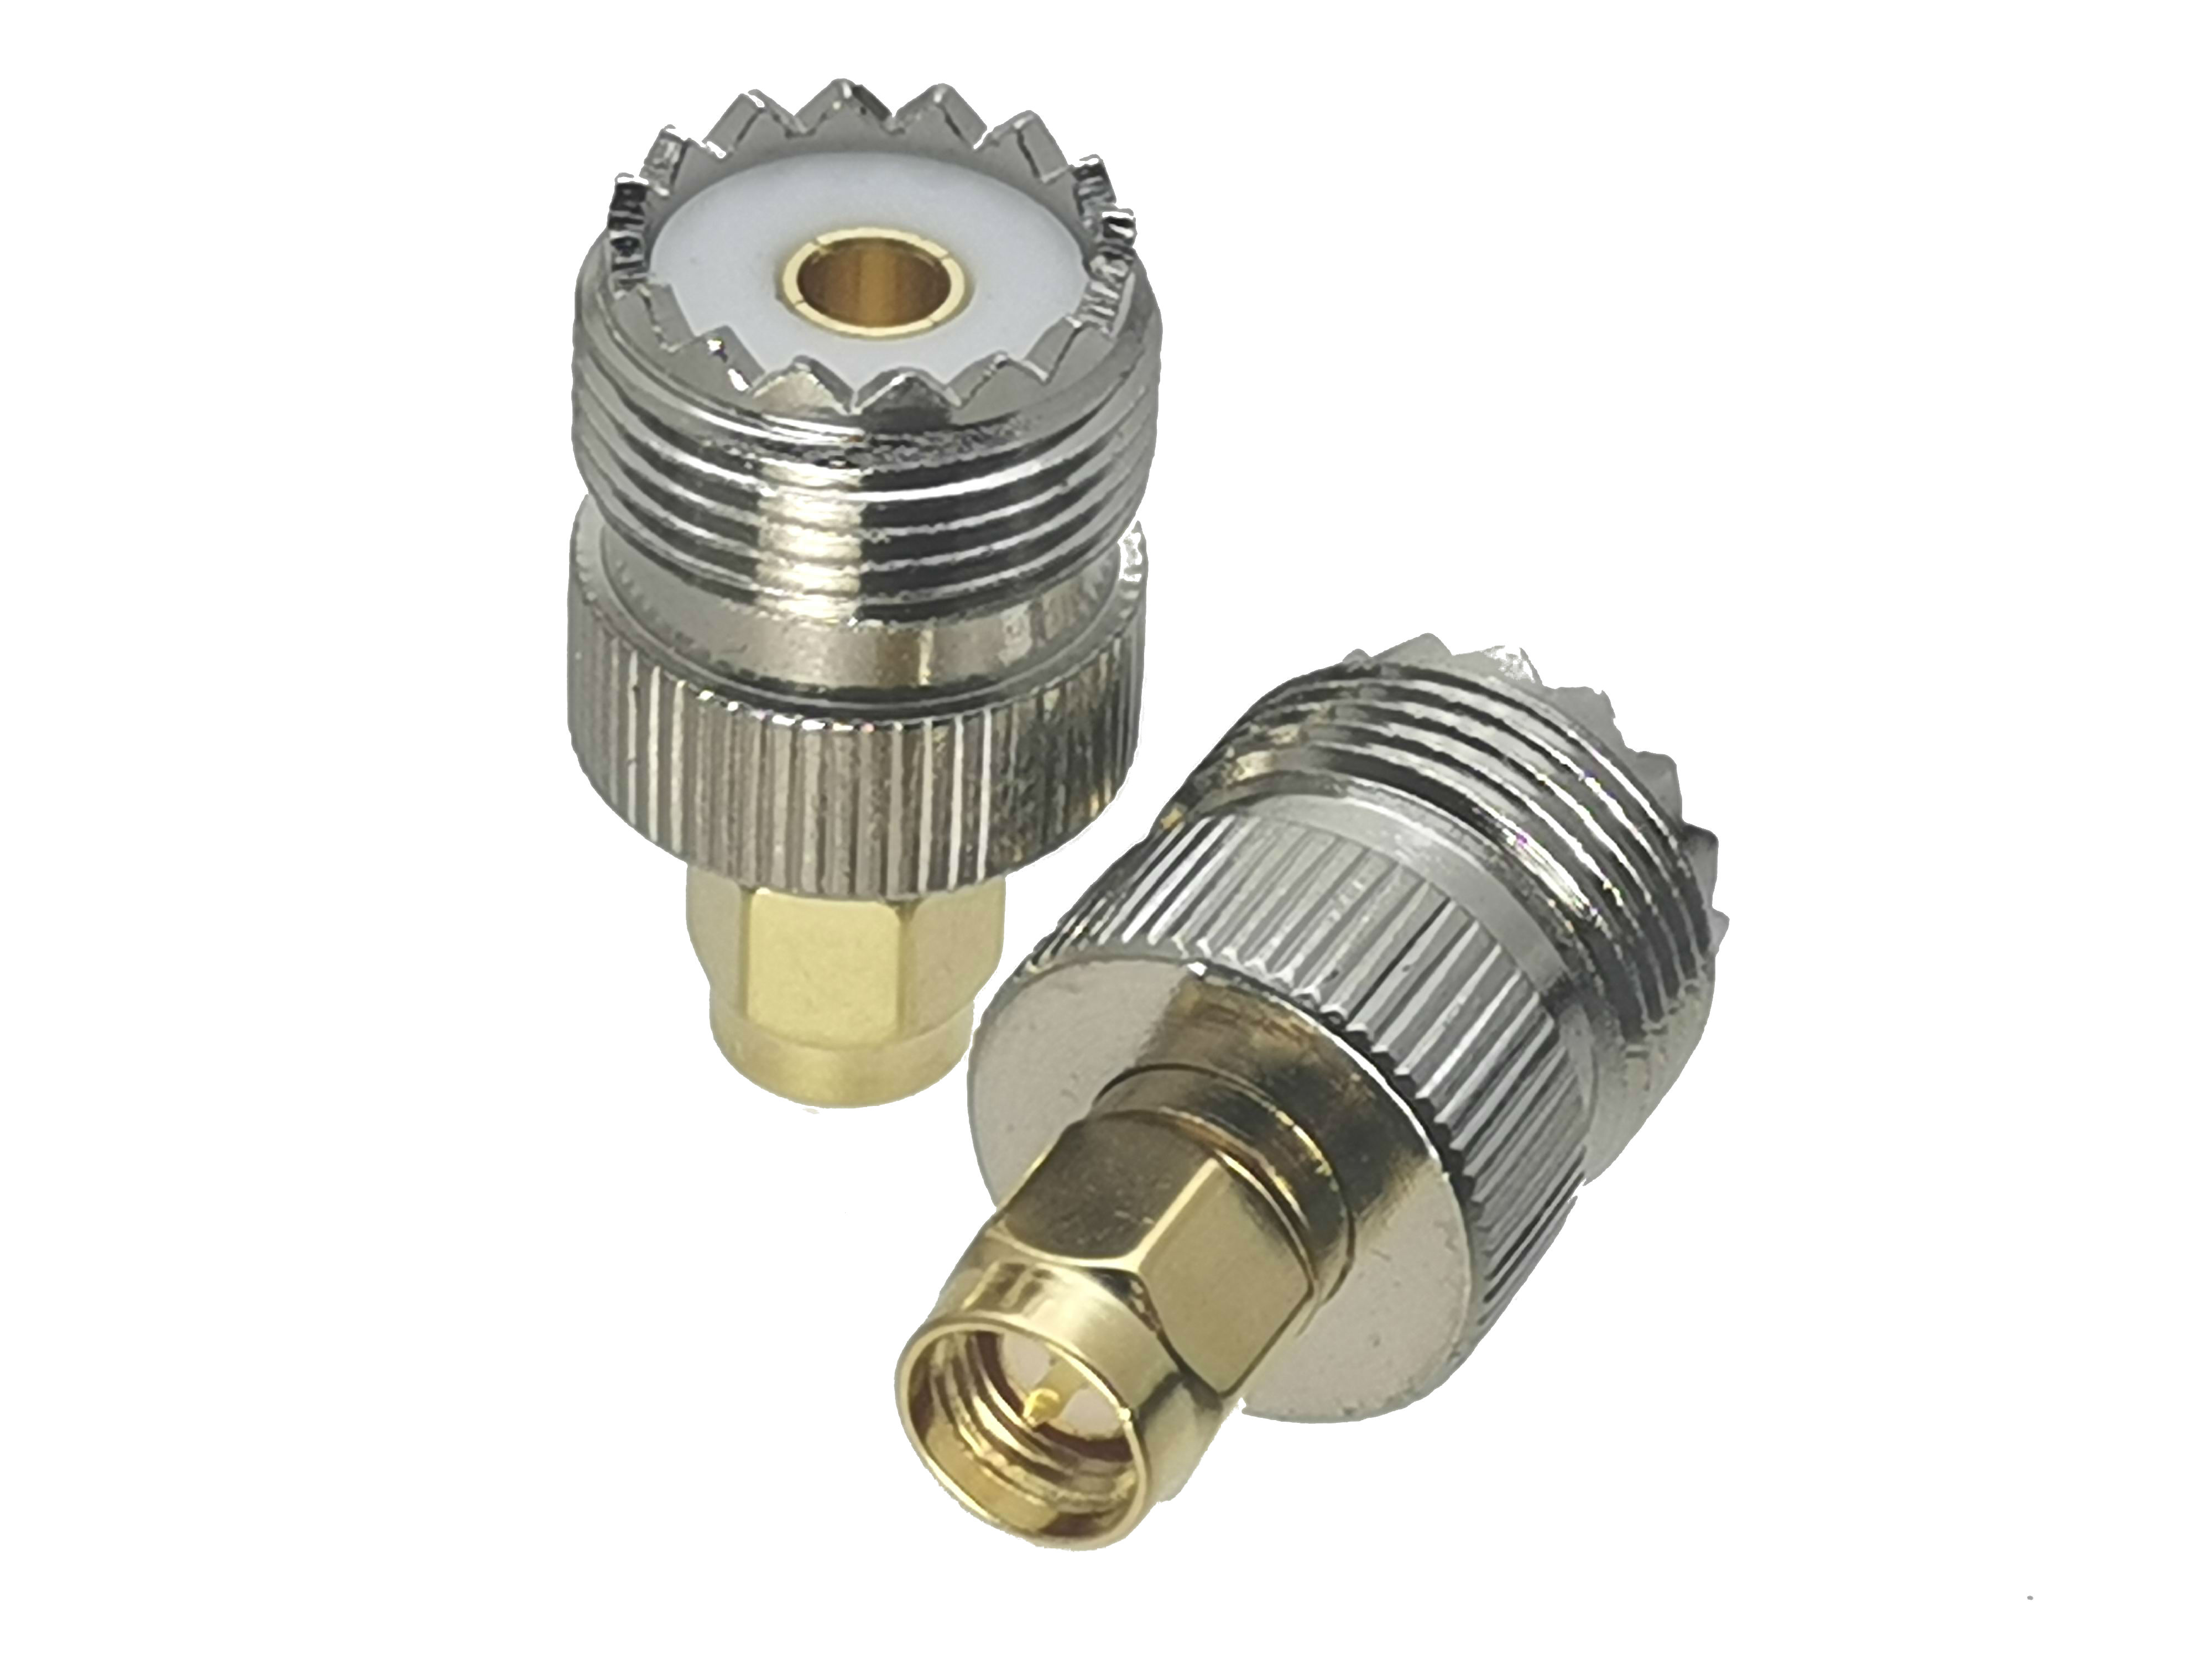 1Pcs UHF Female SO-239 SO239 Jack To SMA Male Plug RF Coaxial Adapter Connector